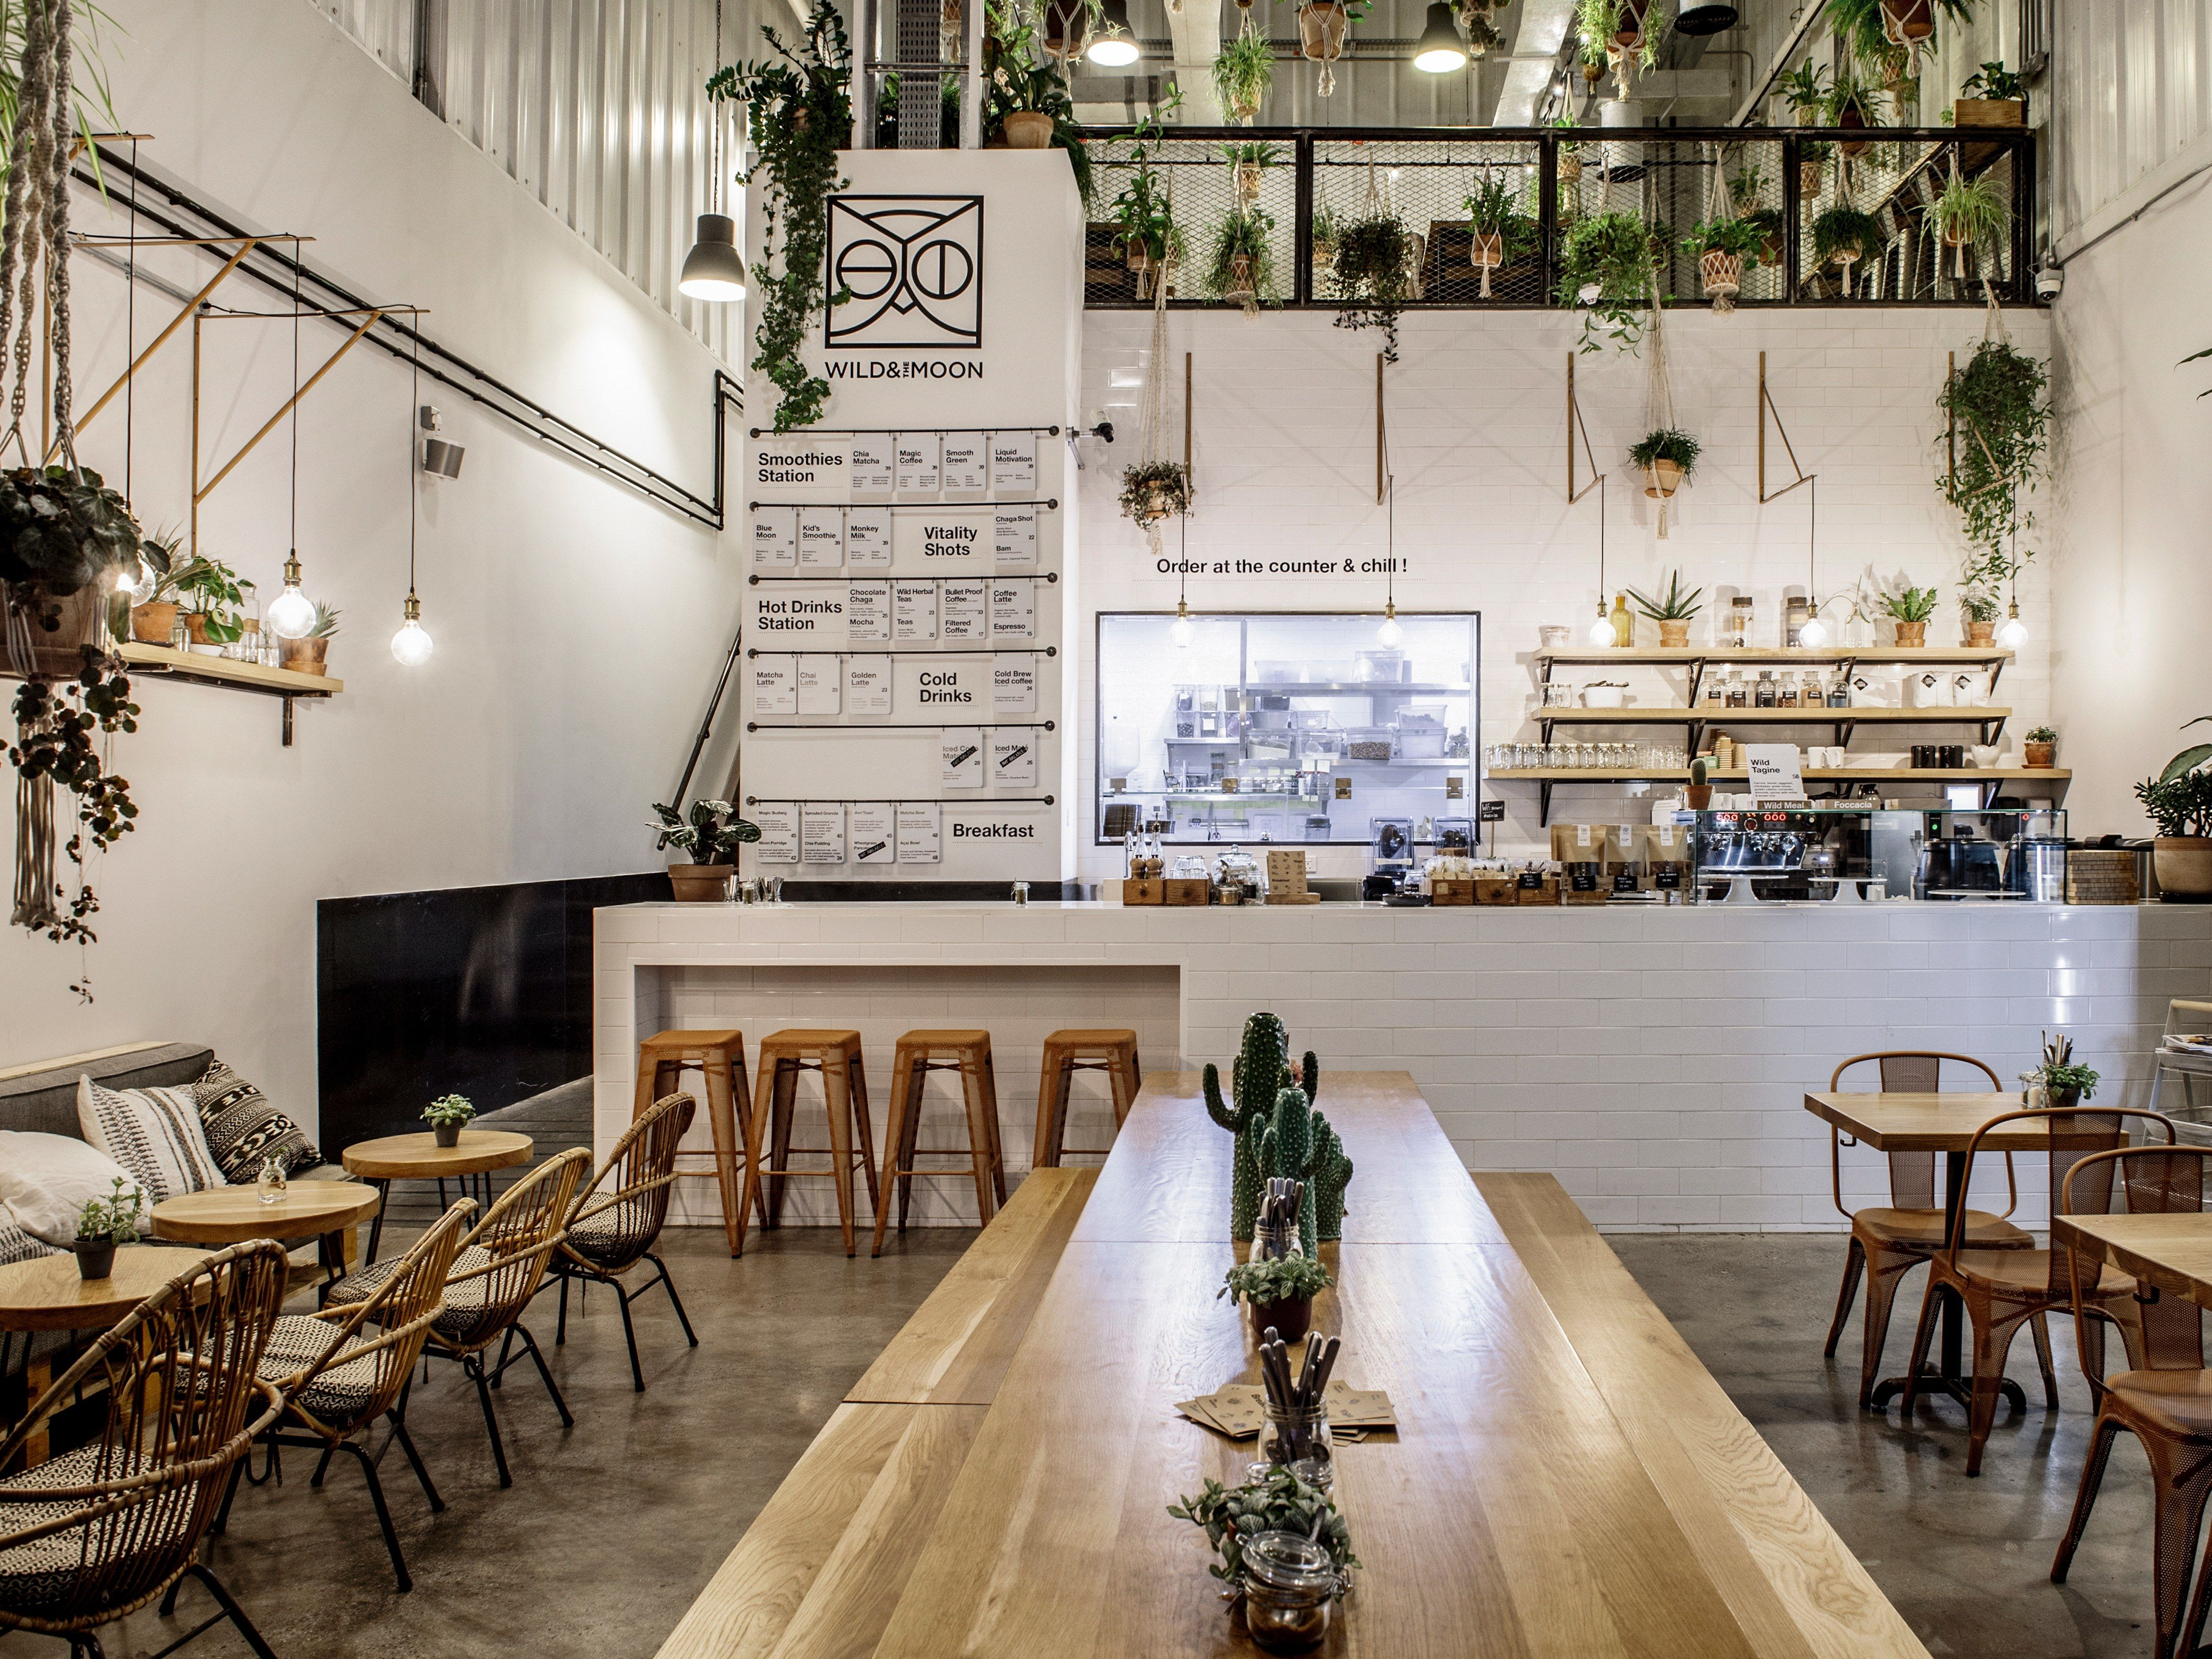 30 Best Restaurants In Dubai With Images Healthy Cafe Healthy